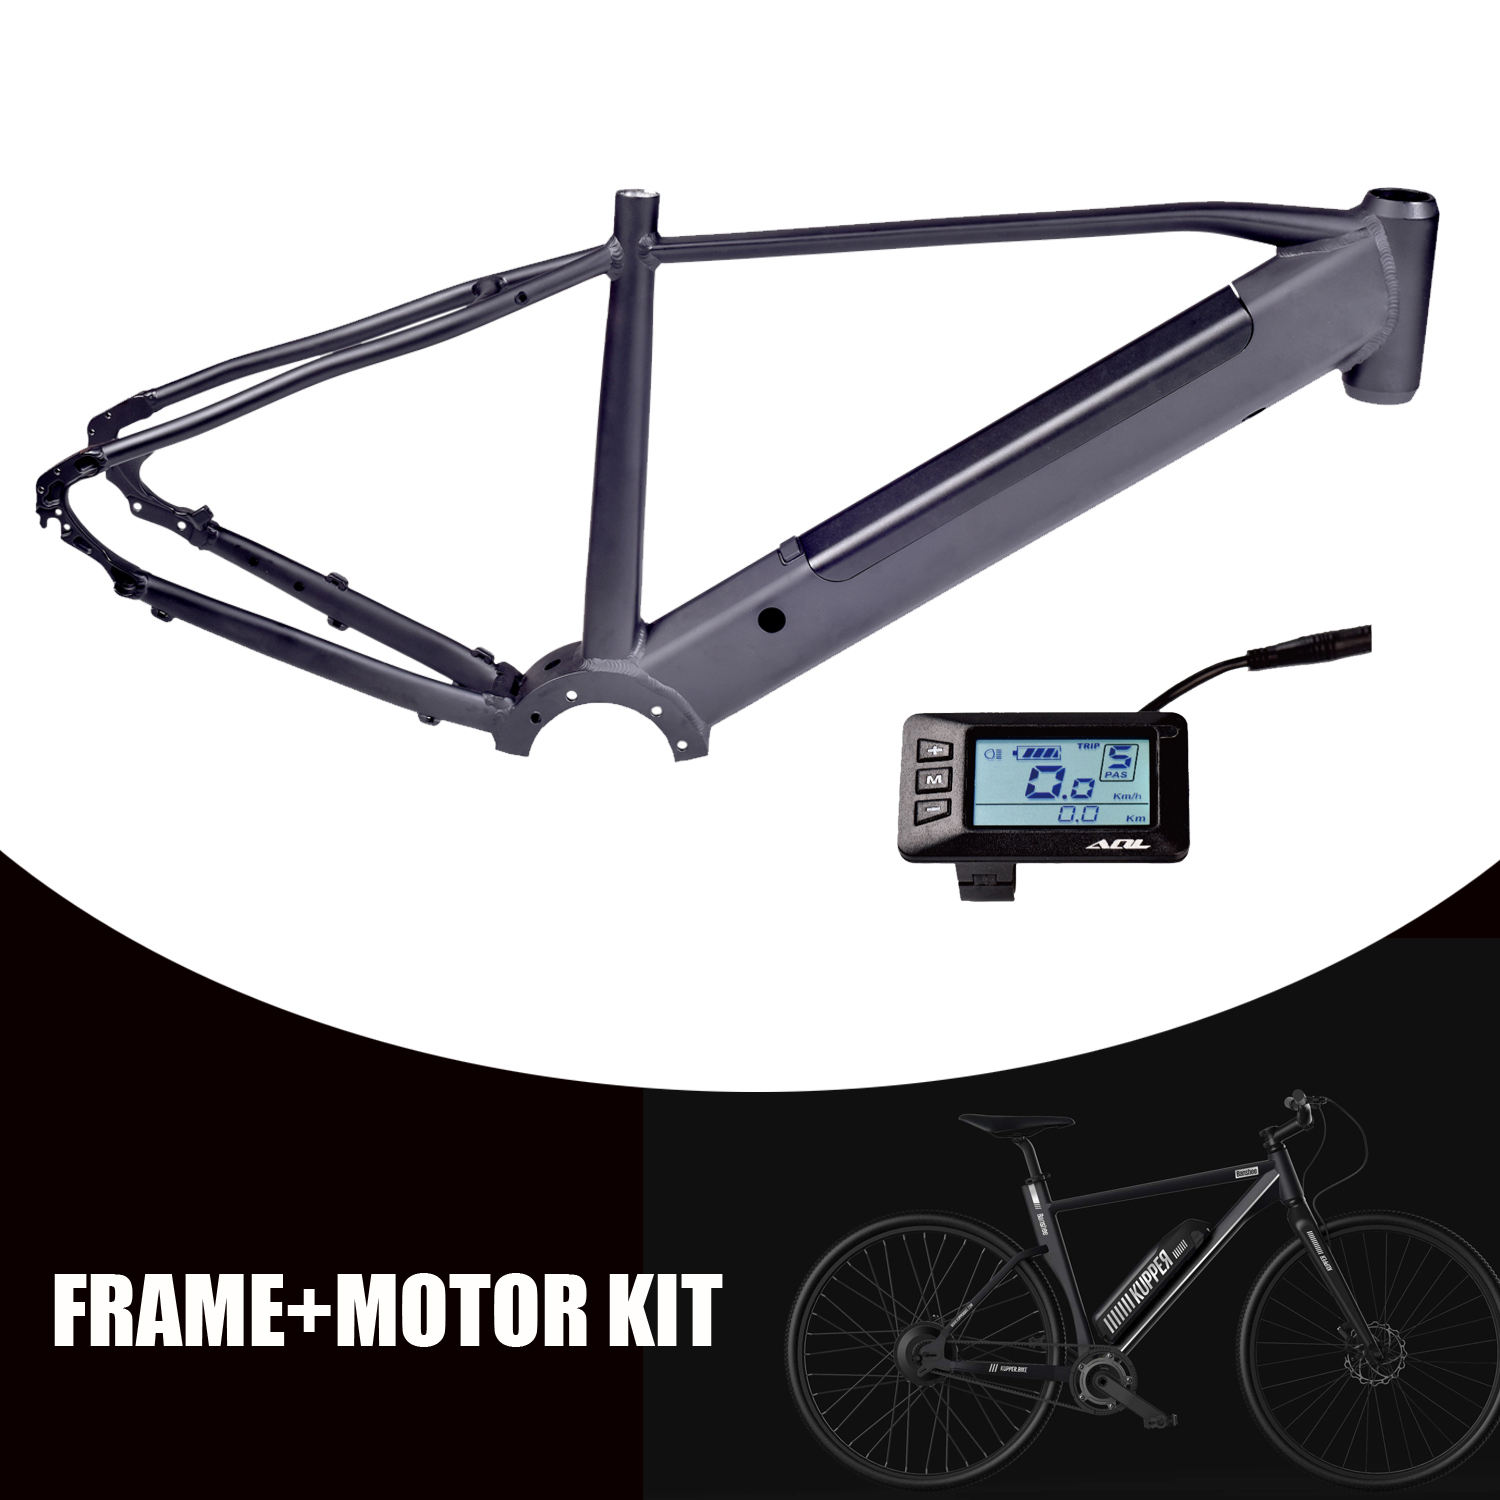 frame integrated battery bafang m500 m600 mm g521.250 AQL 250w+ 350w torque sensor mid drive motor mens commuter electric mtb